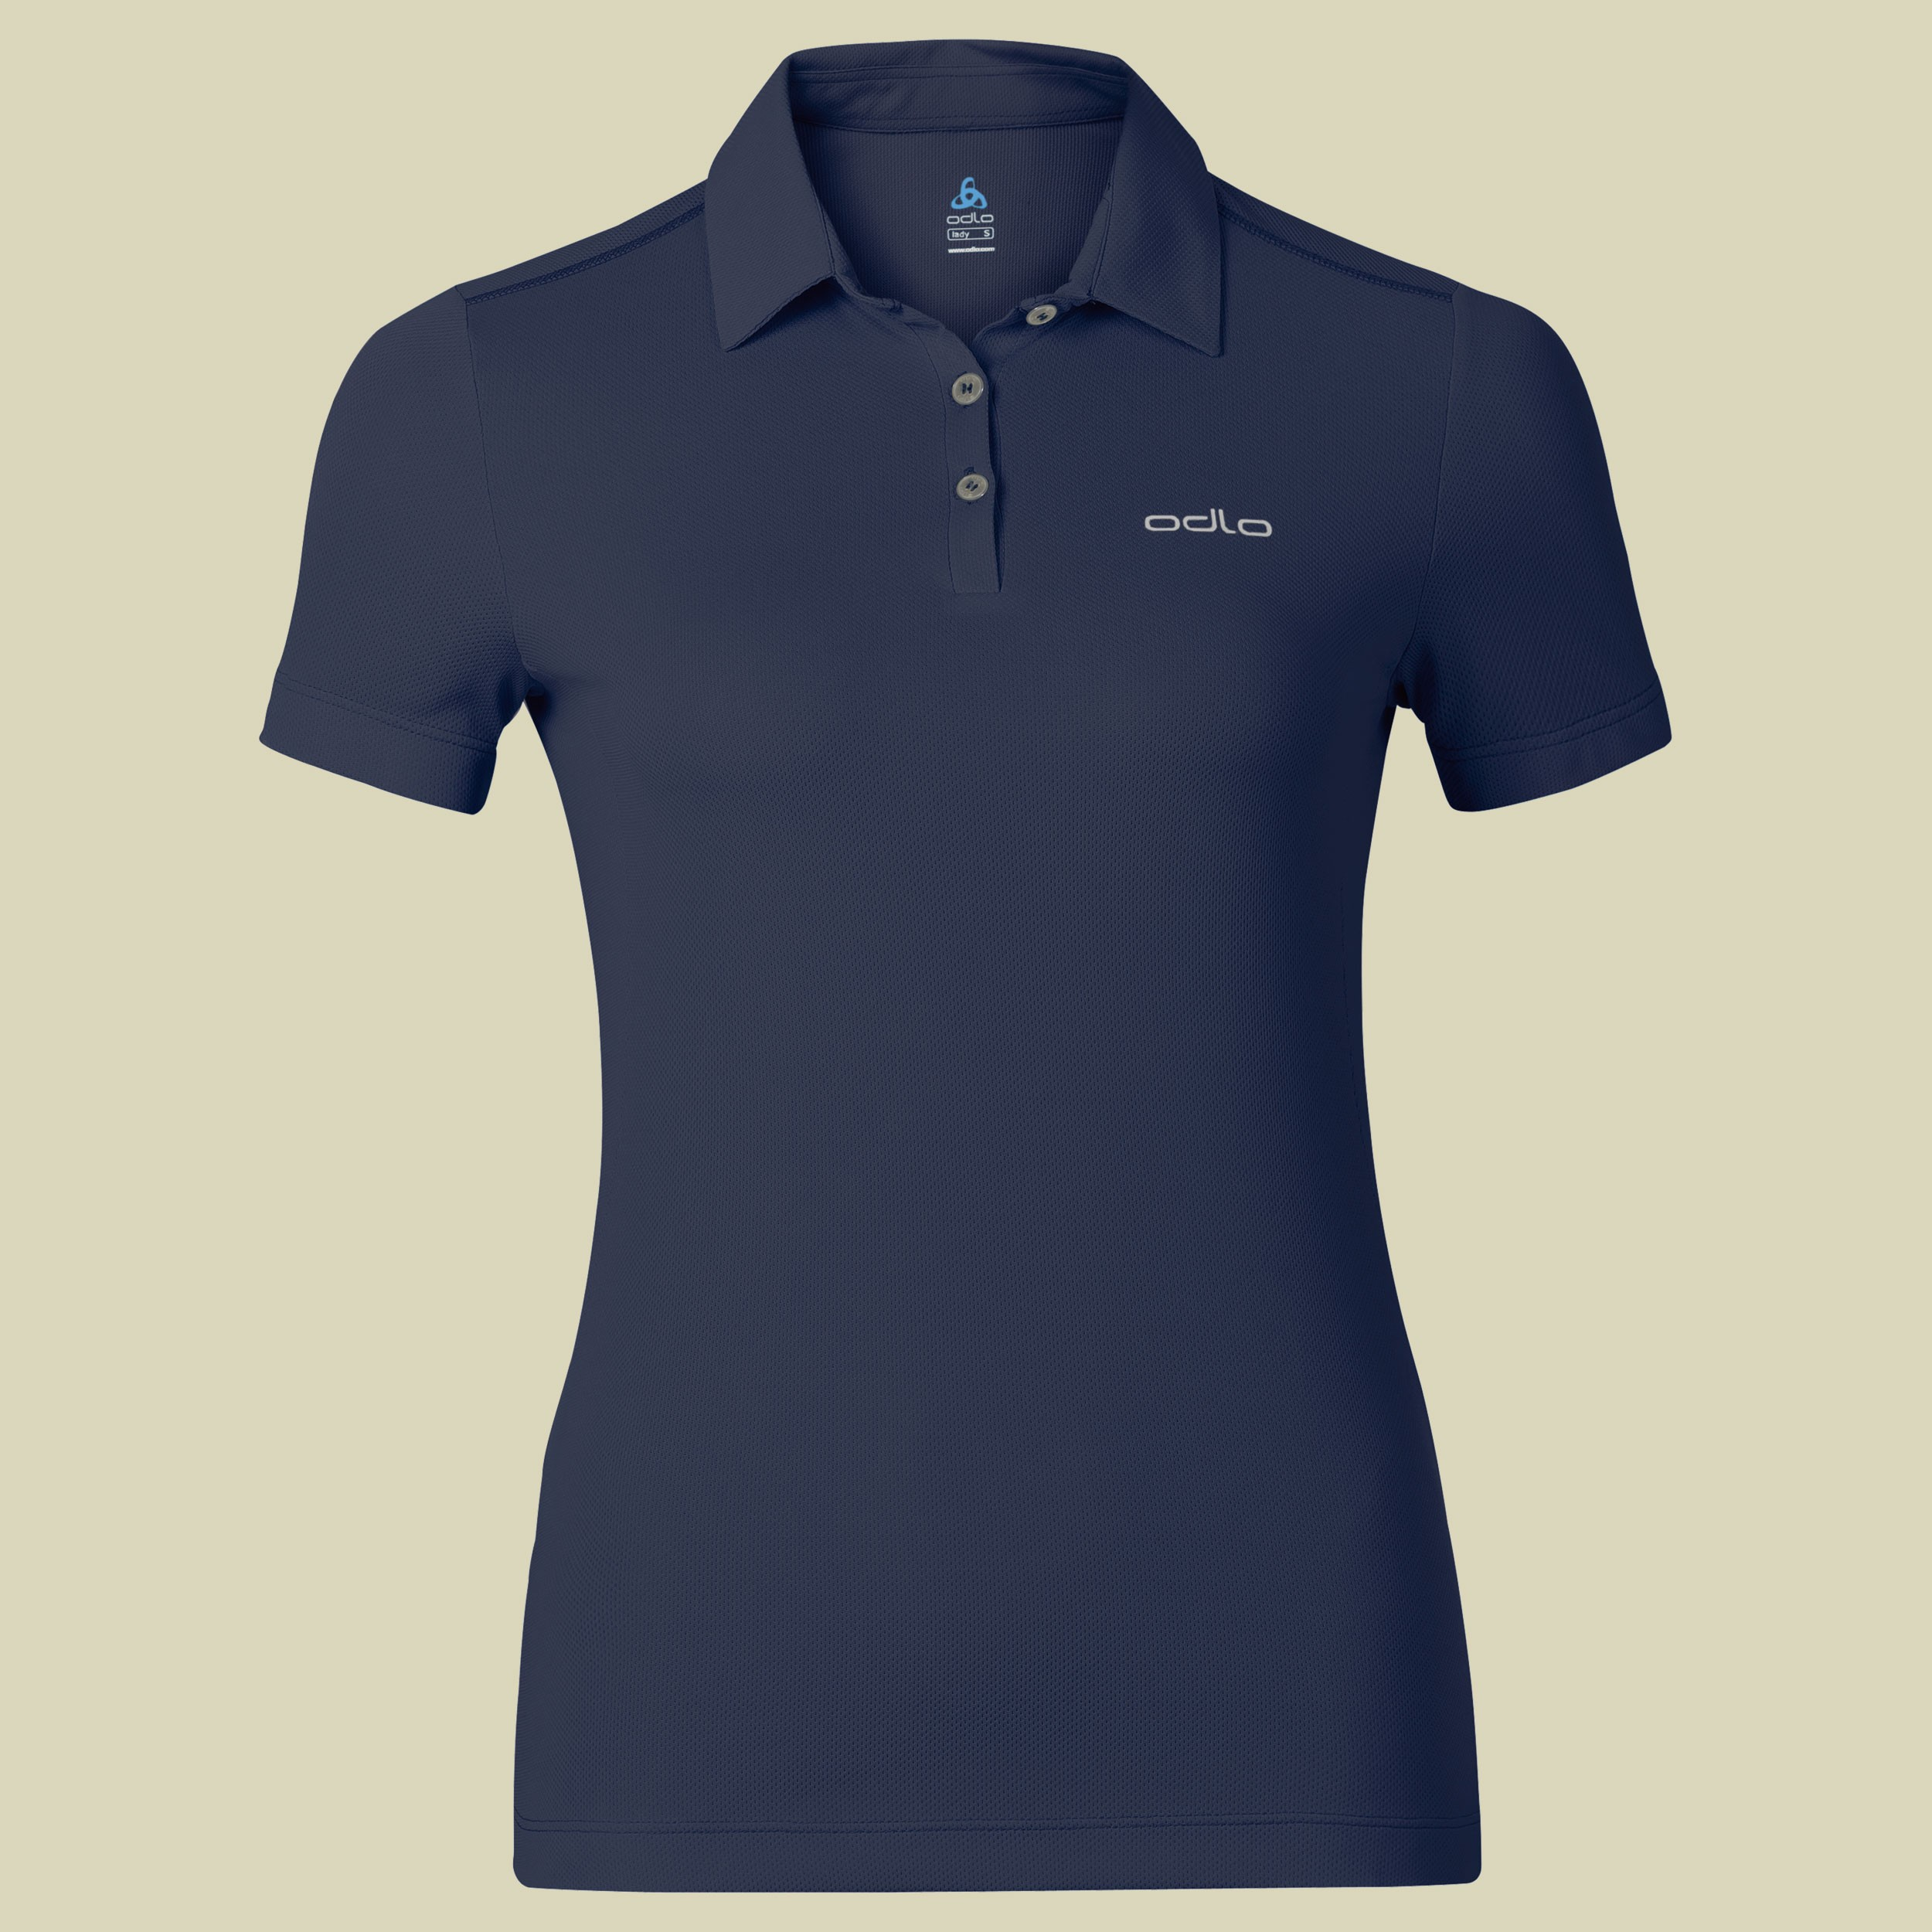 Tina Polo Shirt s/s Women